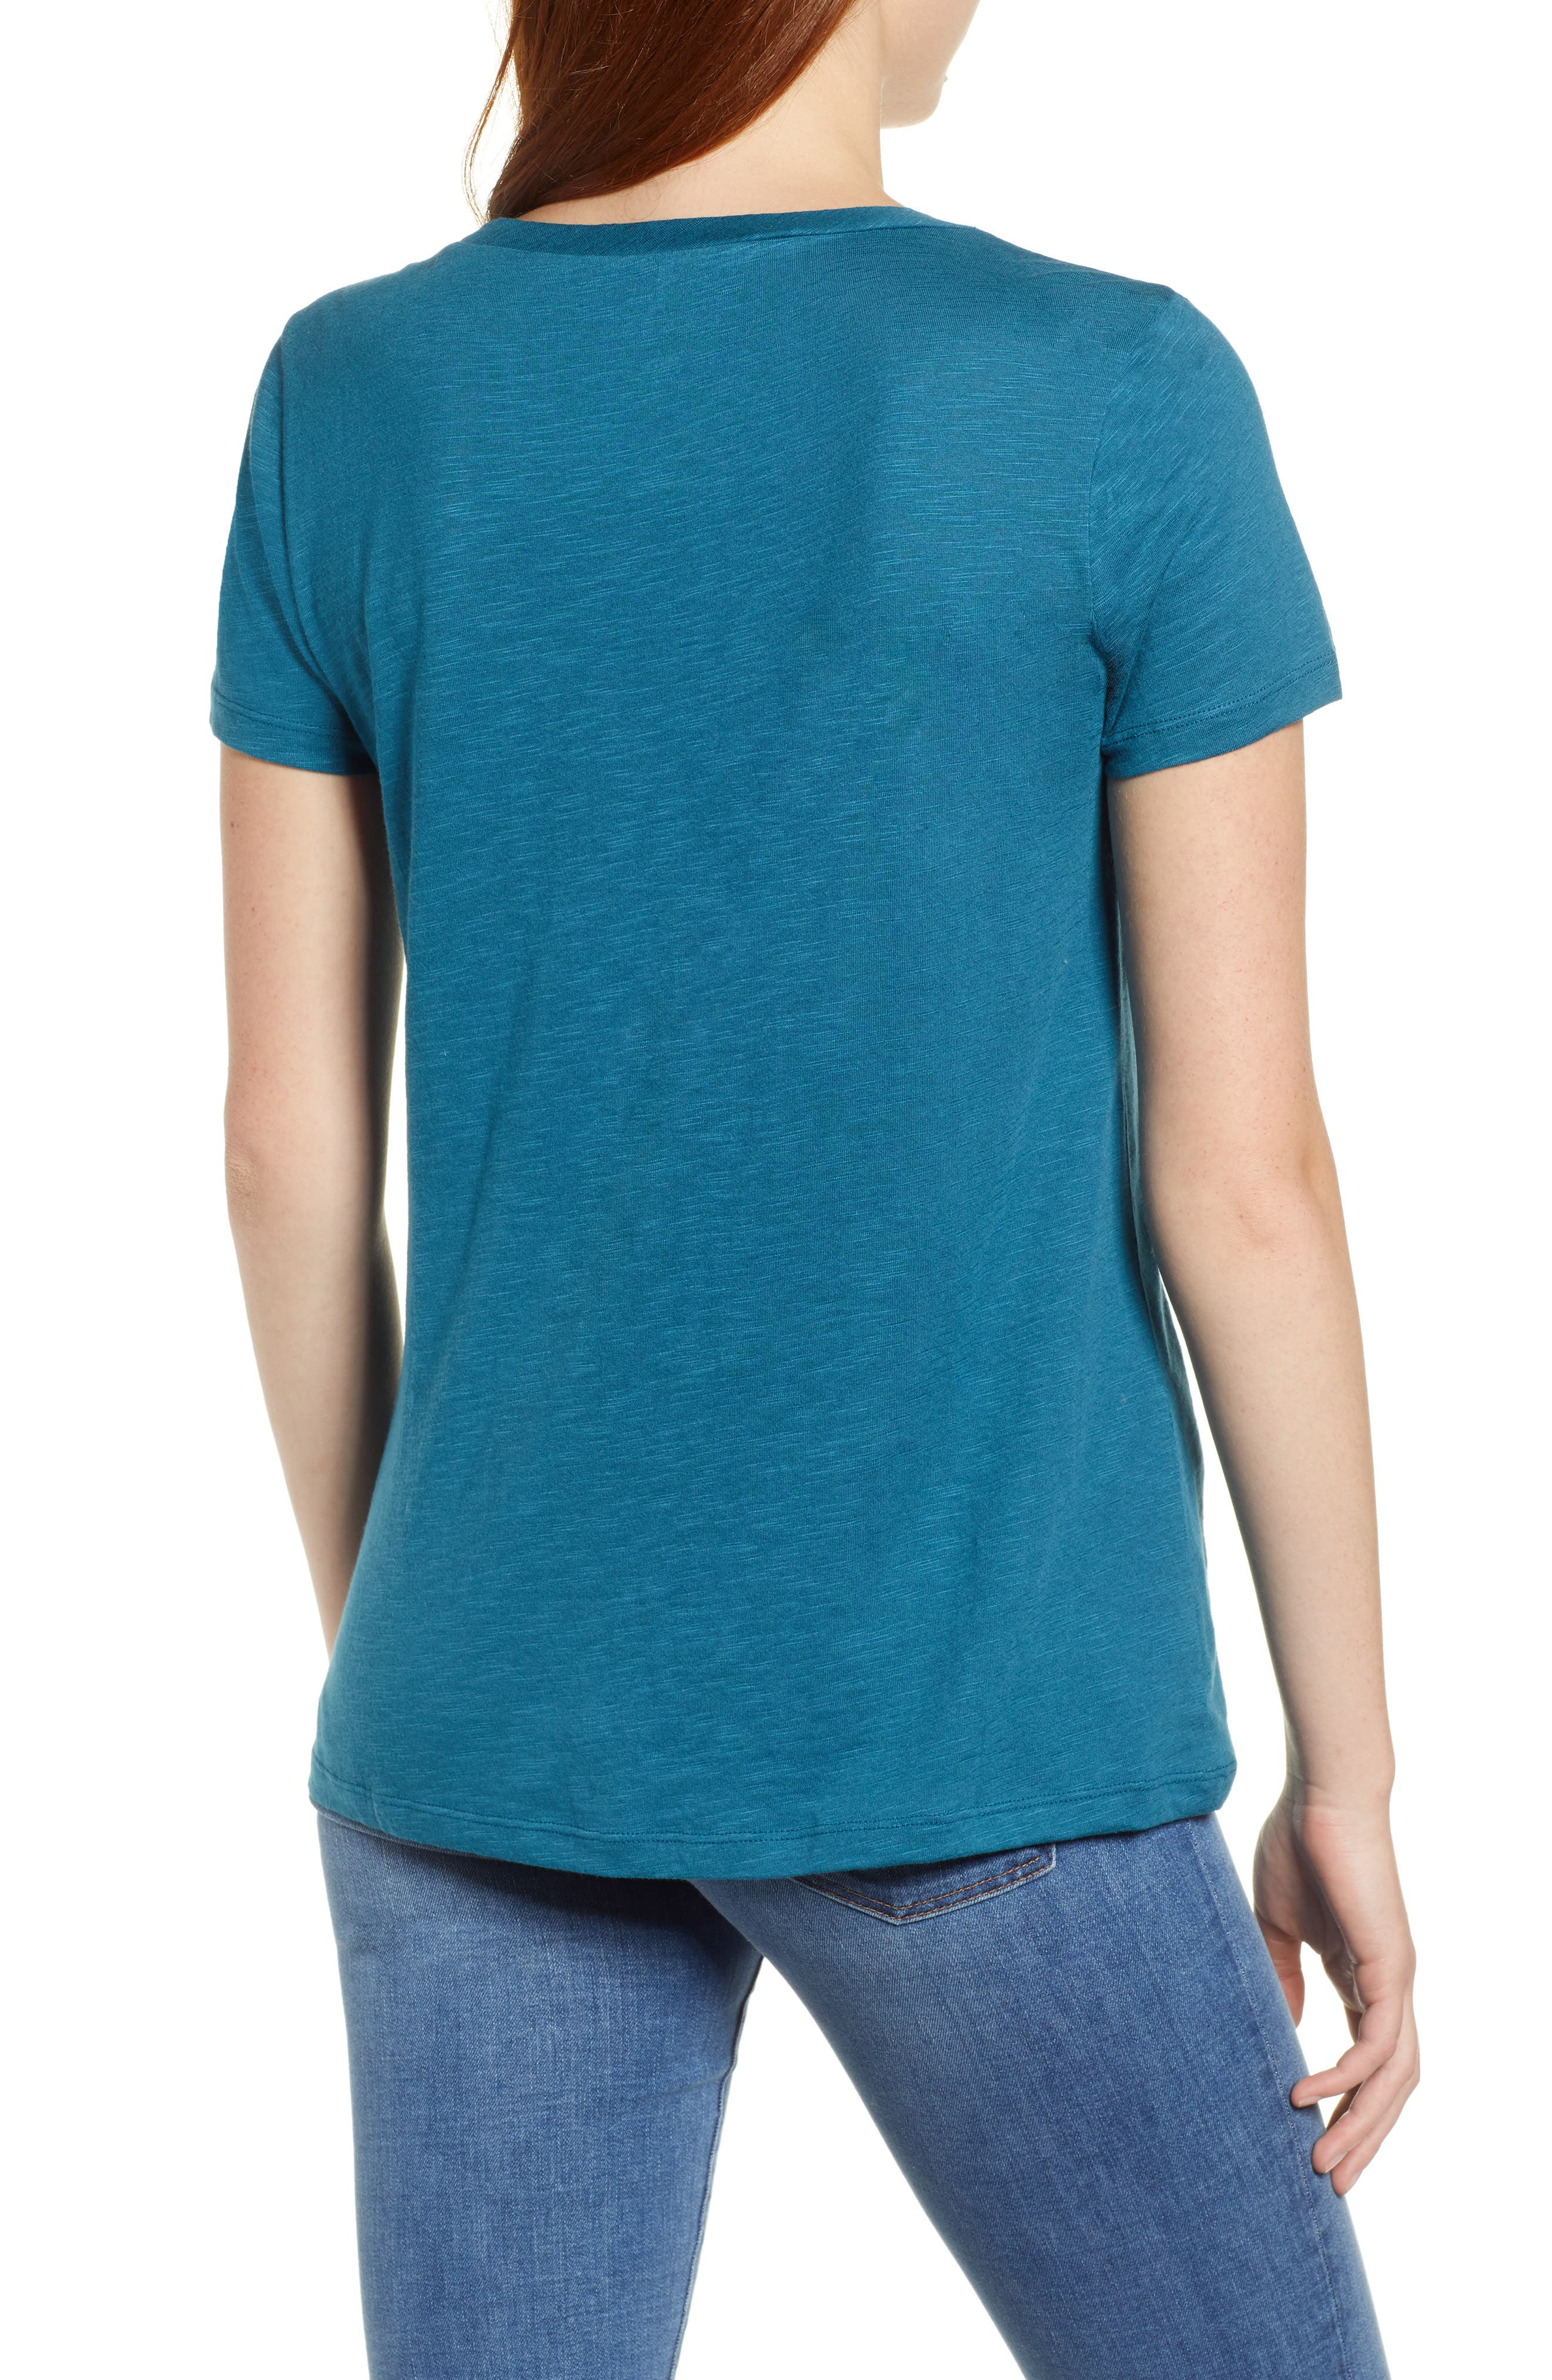 21d98ee96 Women's Blue Tops | Nordstrom